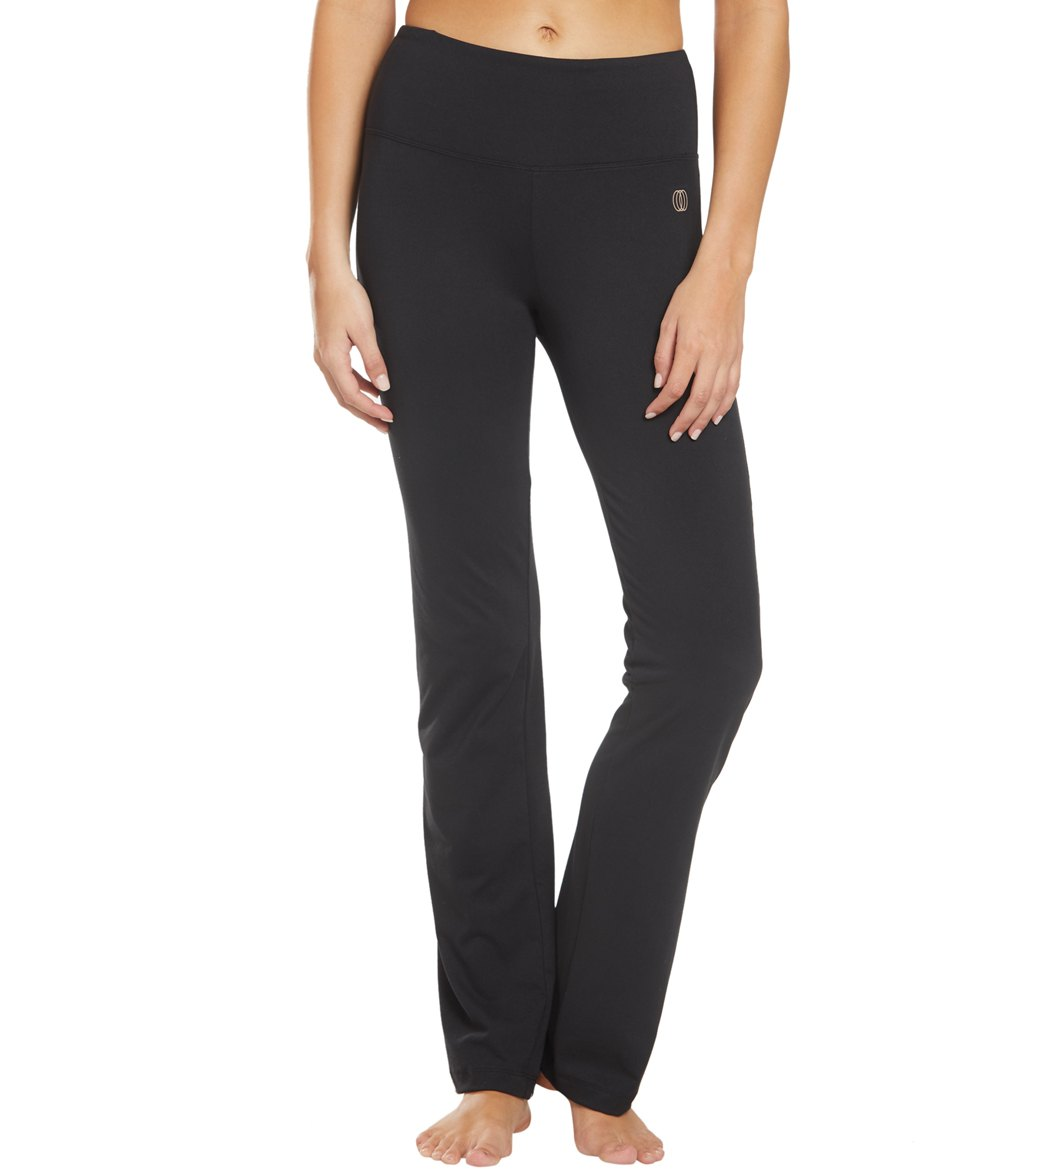 f2c4bfea12 Balance Collection Barely Flare Yoga Pants at YogaOutlet.com